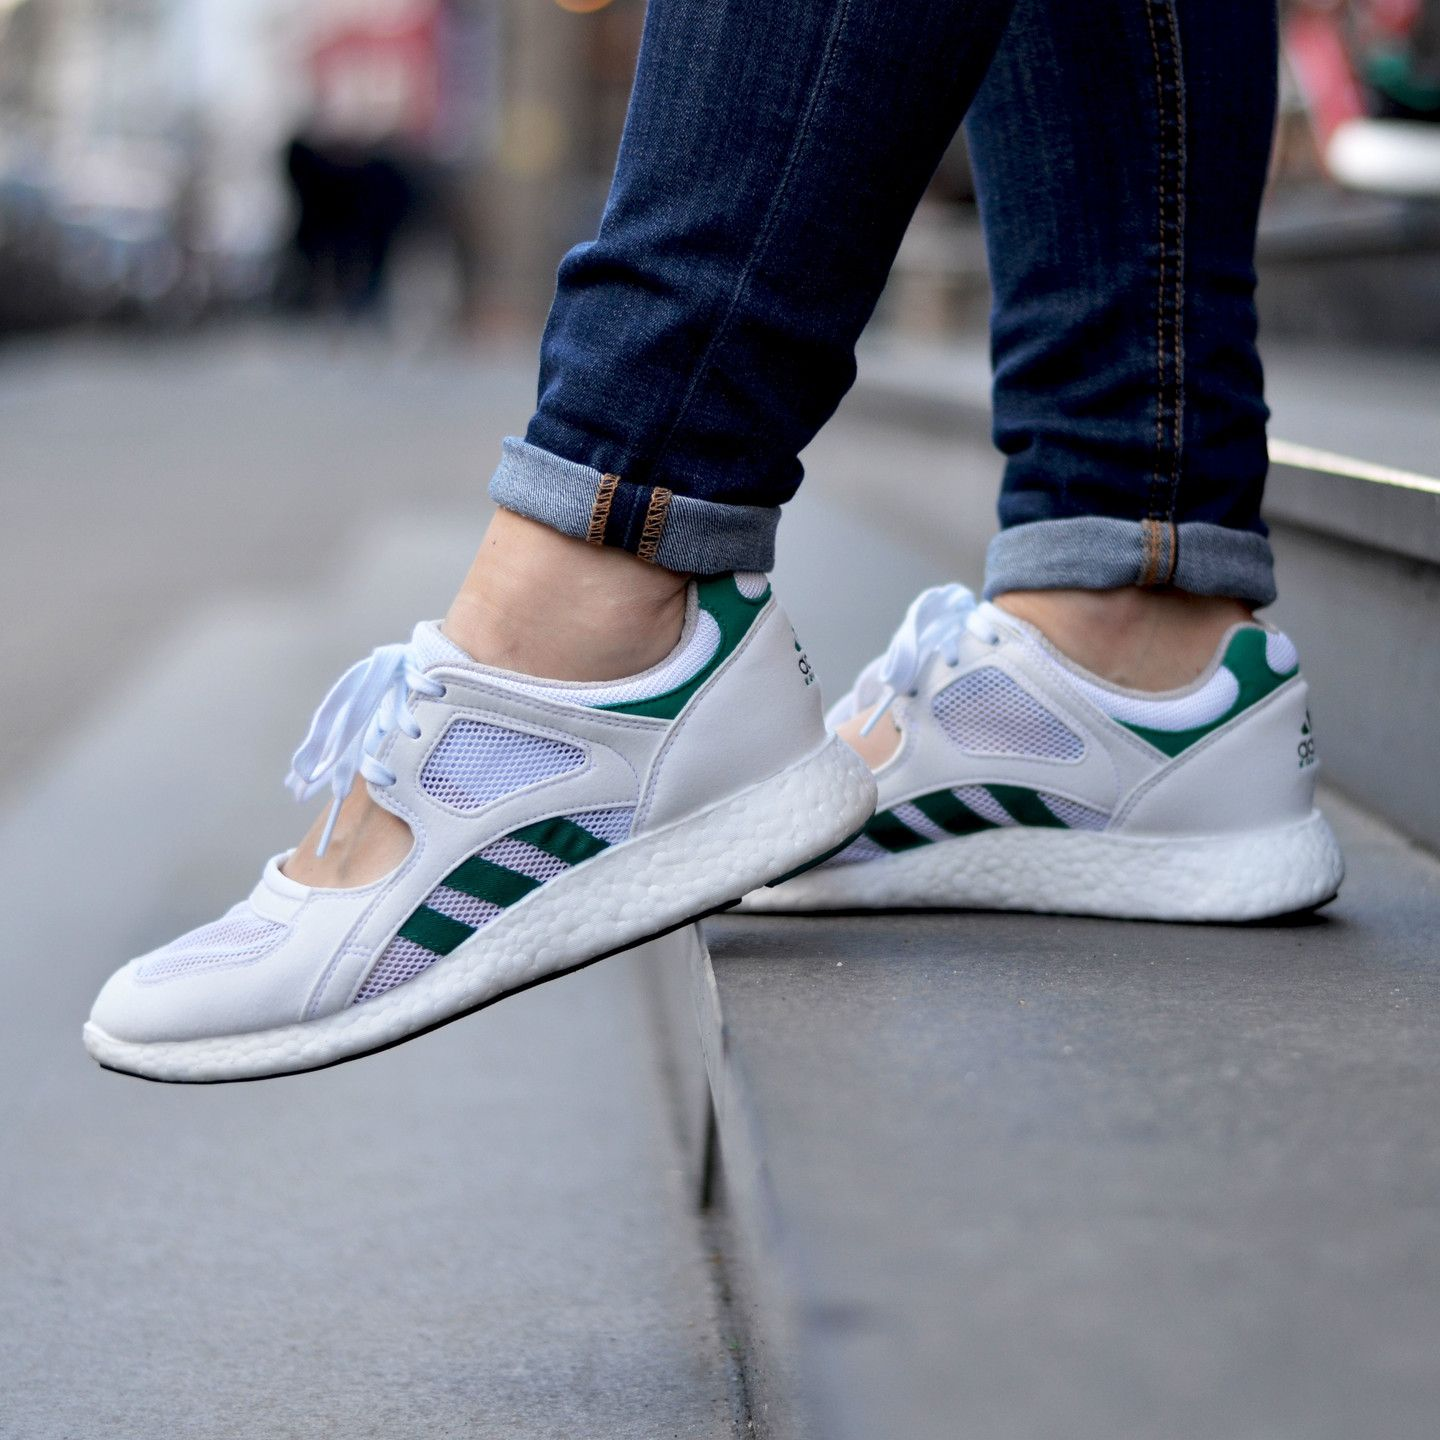 on sale 7c0c8 d0d85 Image result for adidas EQT Racing '91 Boost Sneaker | All ...